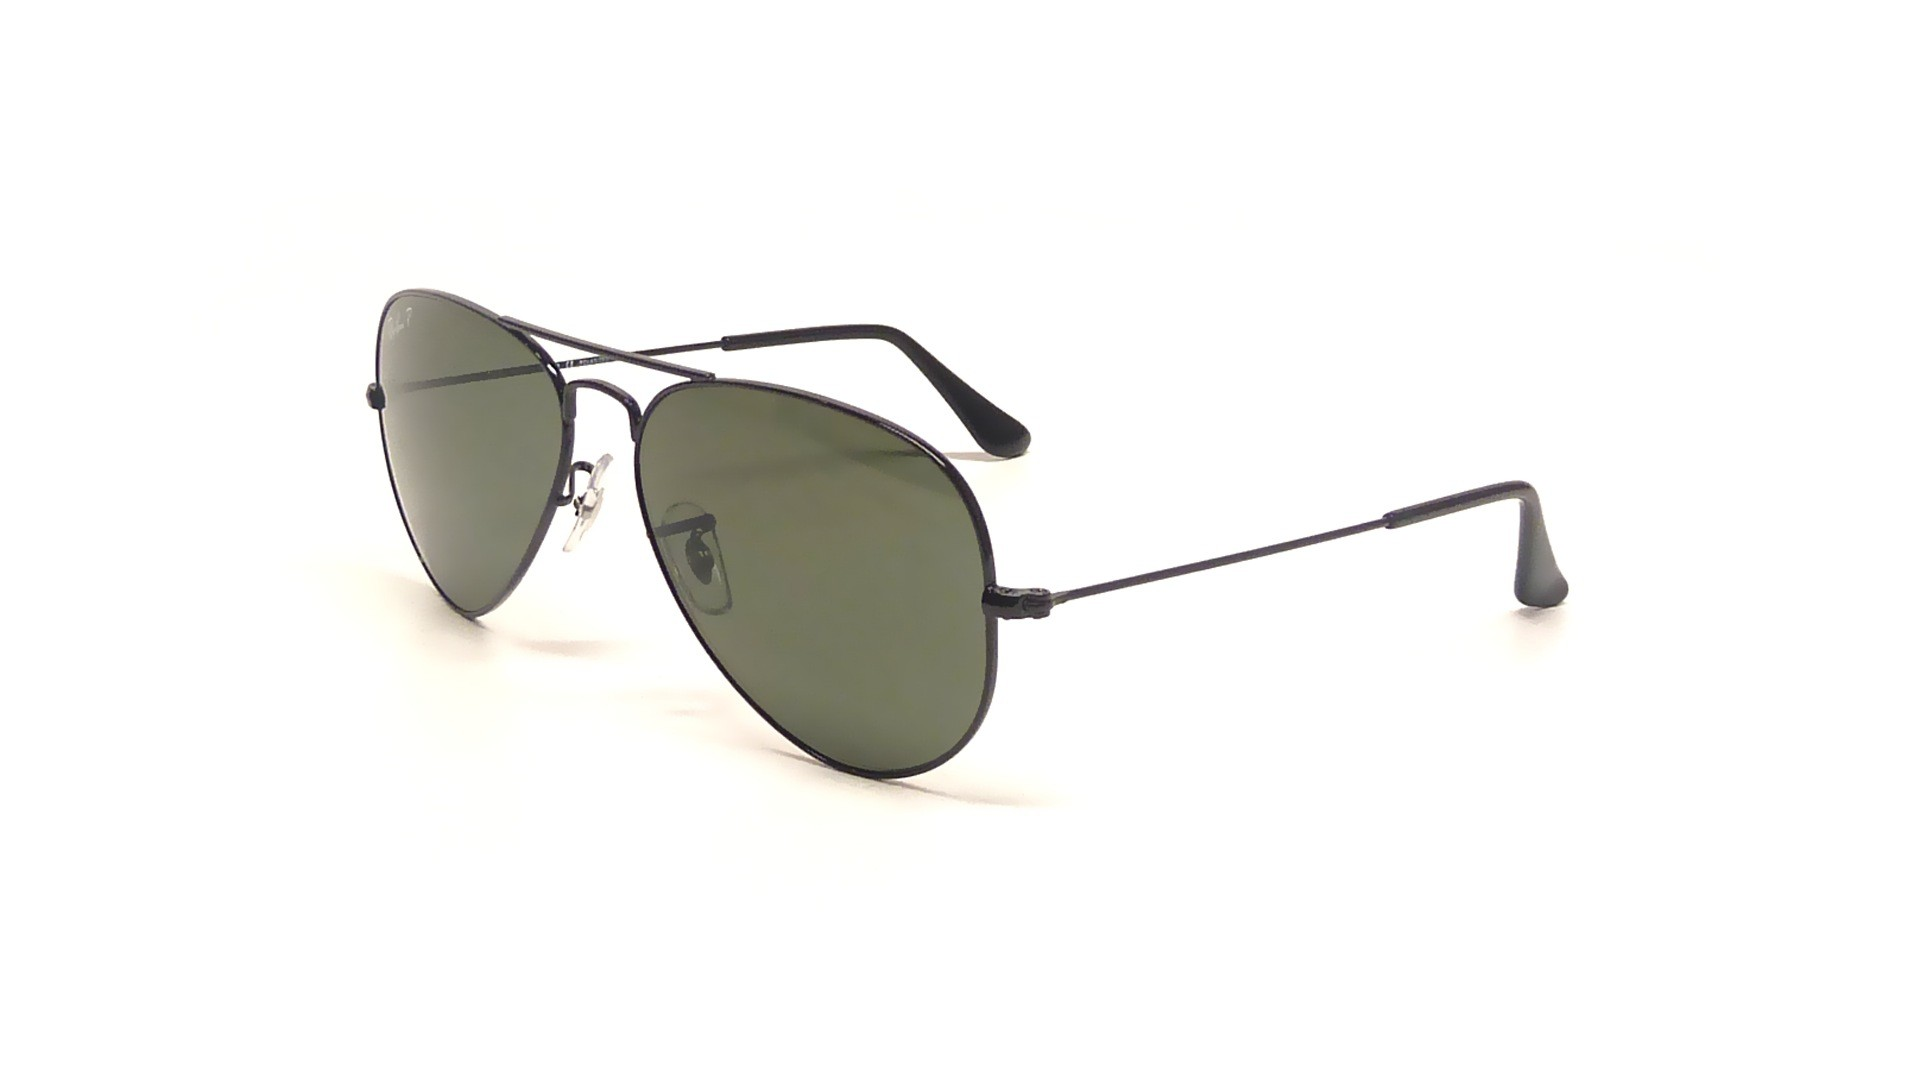 800f043c36 Sunglasses Ray-Ban Aviator Large Metal Black RB3025 002 58 55-14 Small  Polarized